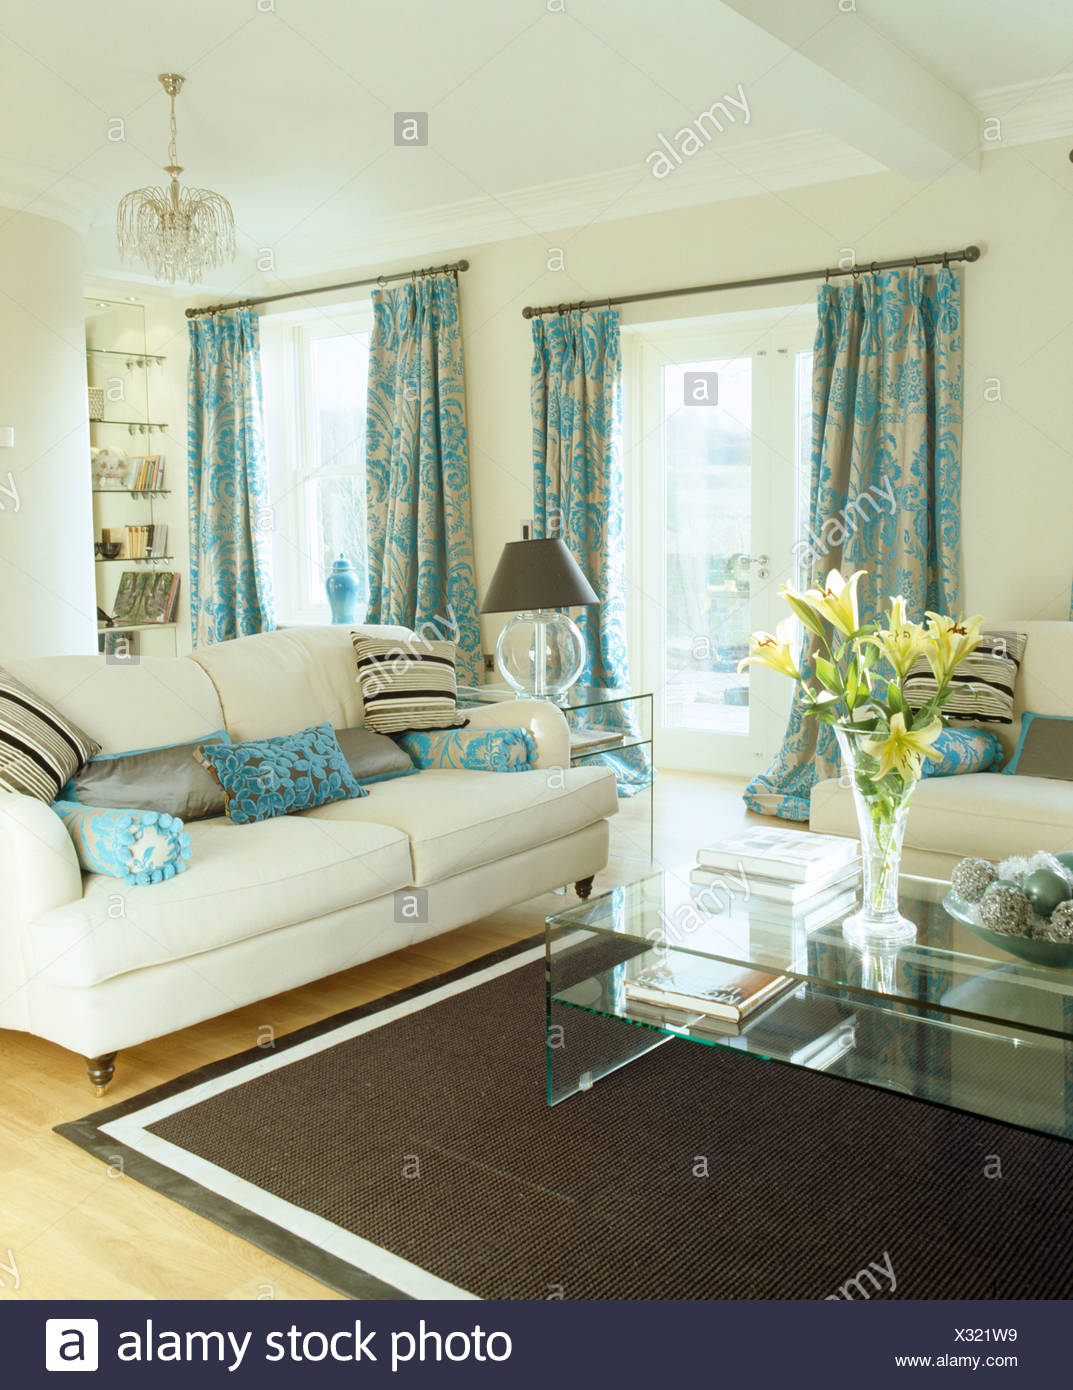 Patterned Turquoise Curtains And Cream Sofas In Cream Living Room With Black  Rug And Modern Glass Table